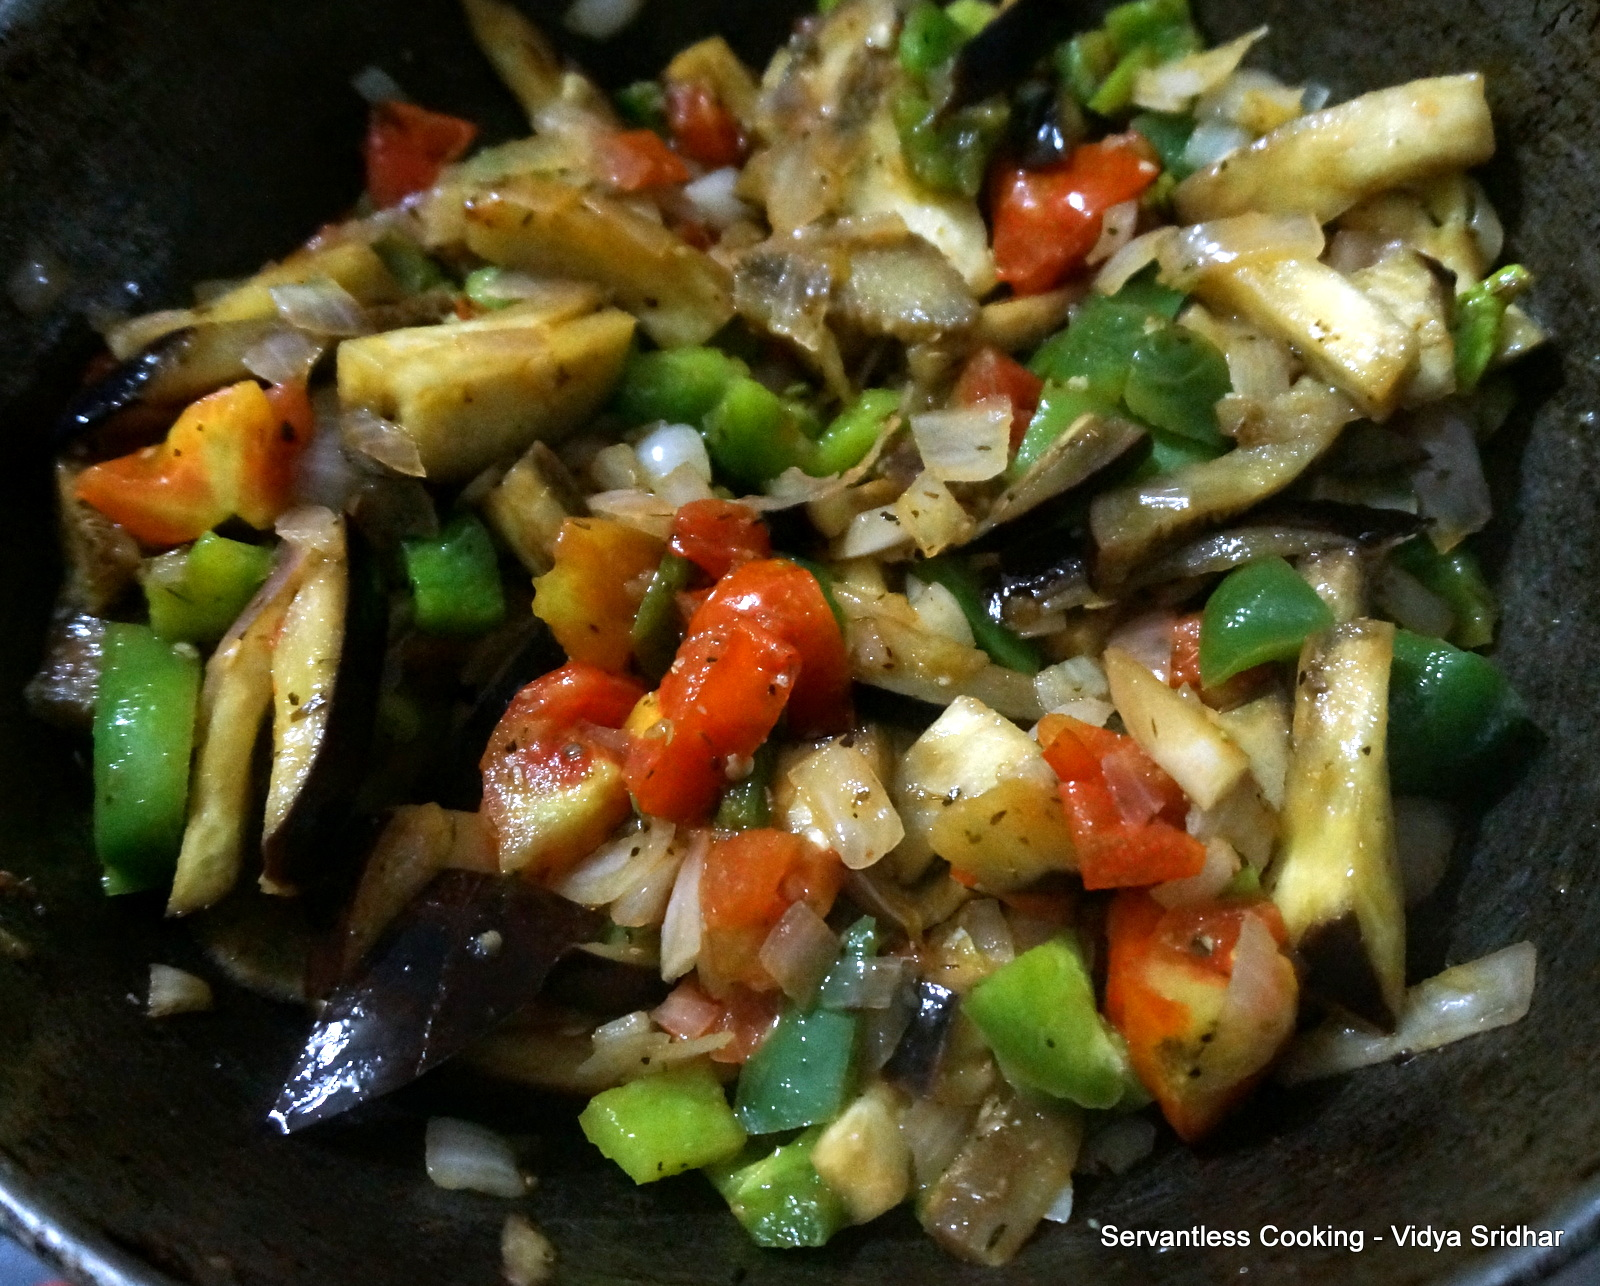 ... cooking : Baked Vegetable and Olive Frittata (Baked egg dish